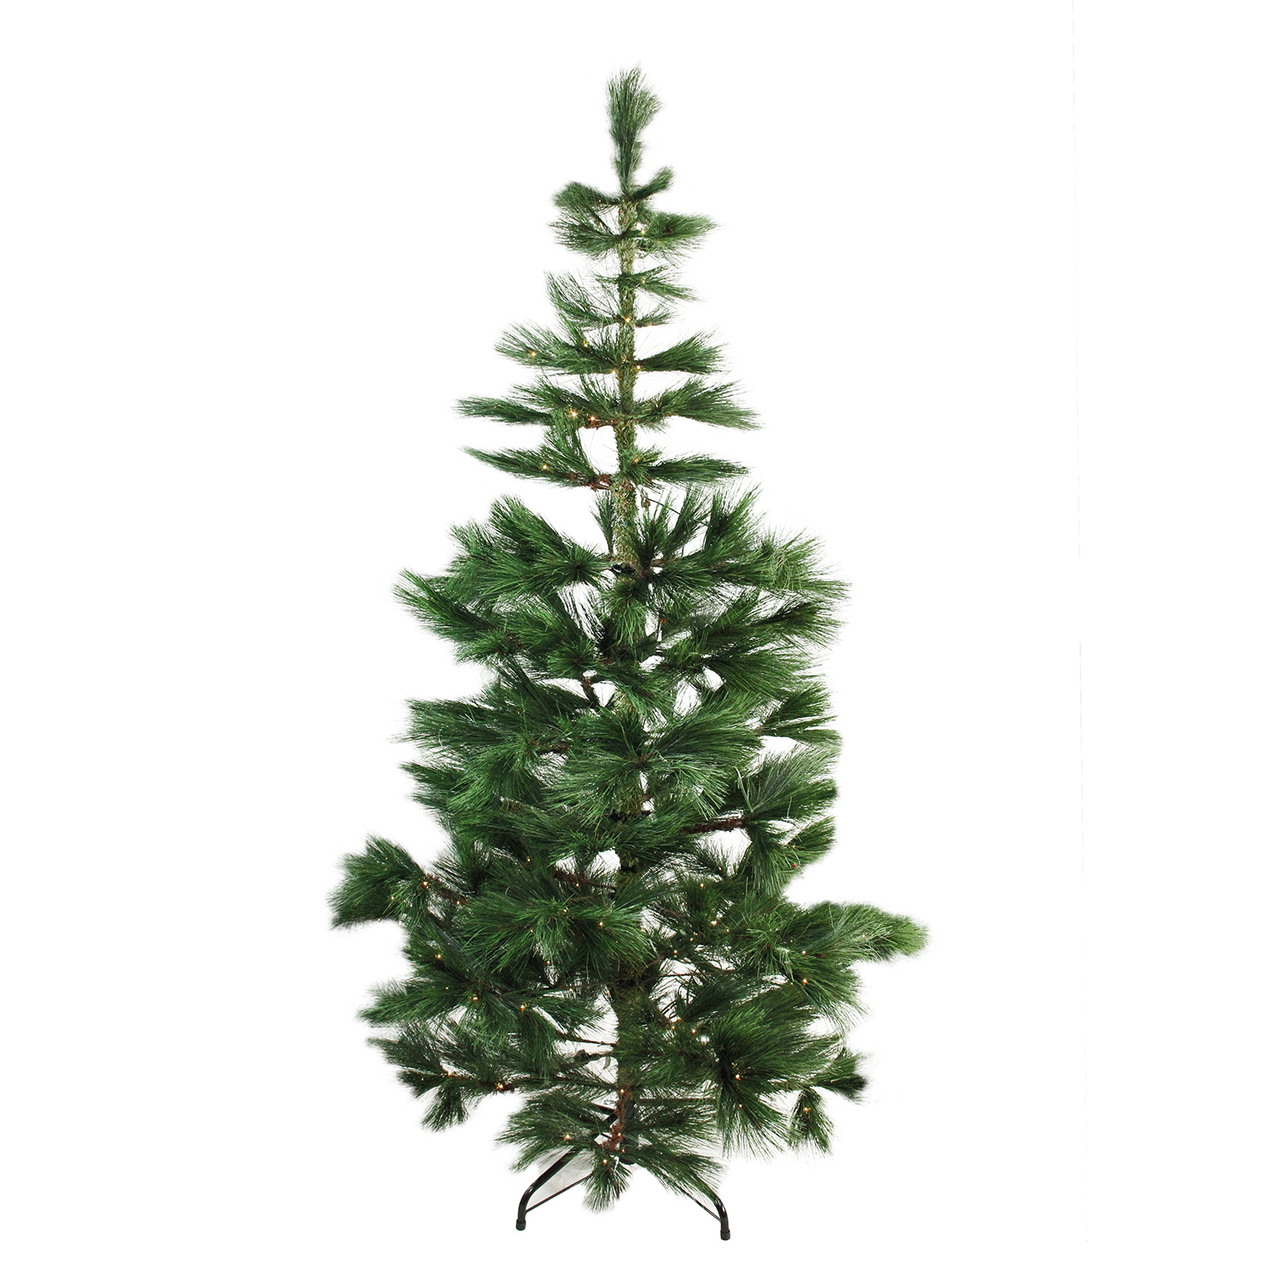 Pre Lit Led Lights Christmas Tree: 7' Pre-Lit Medium Pine Artificial Christmas Tree